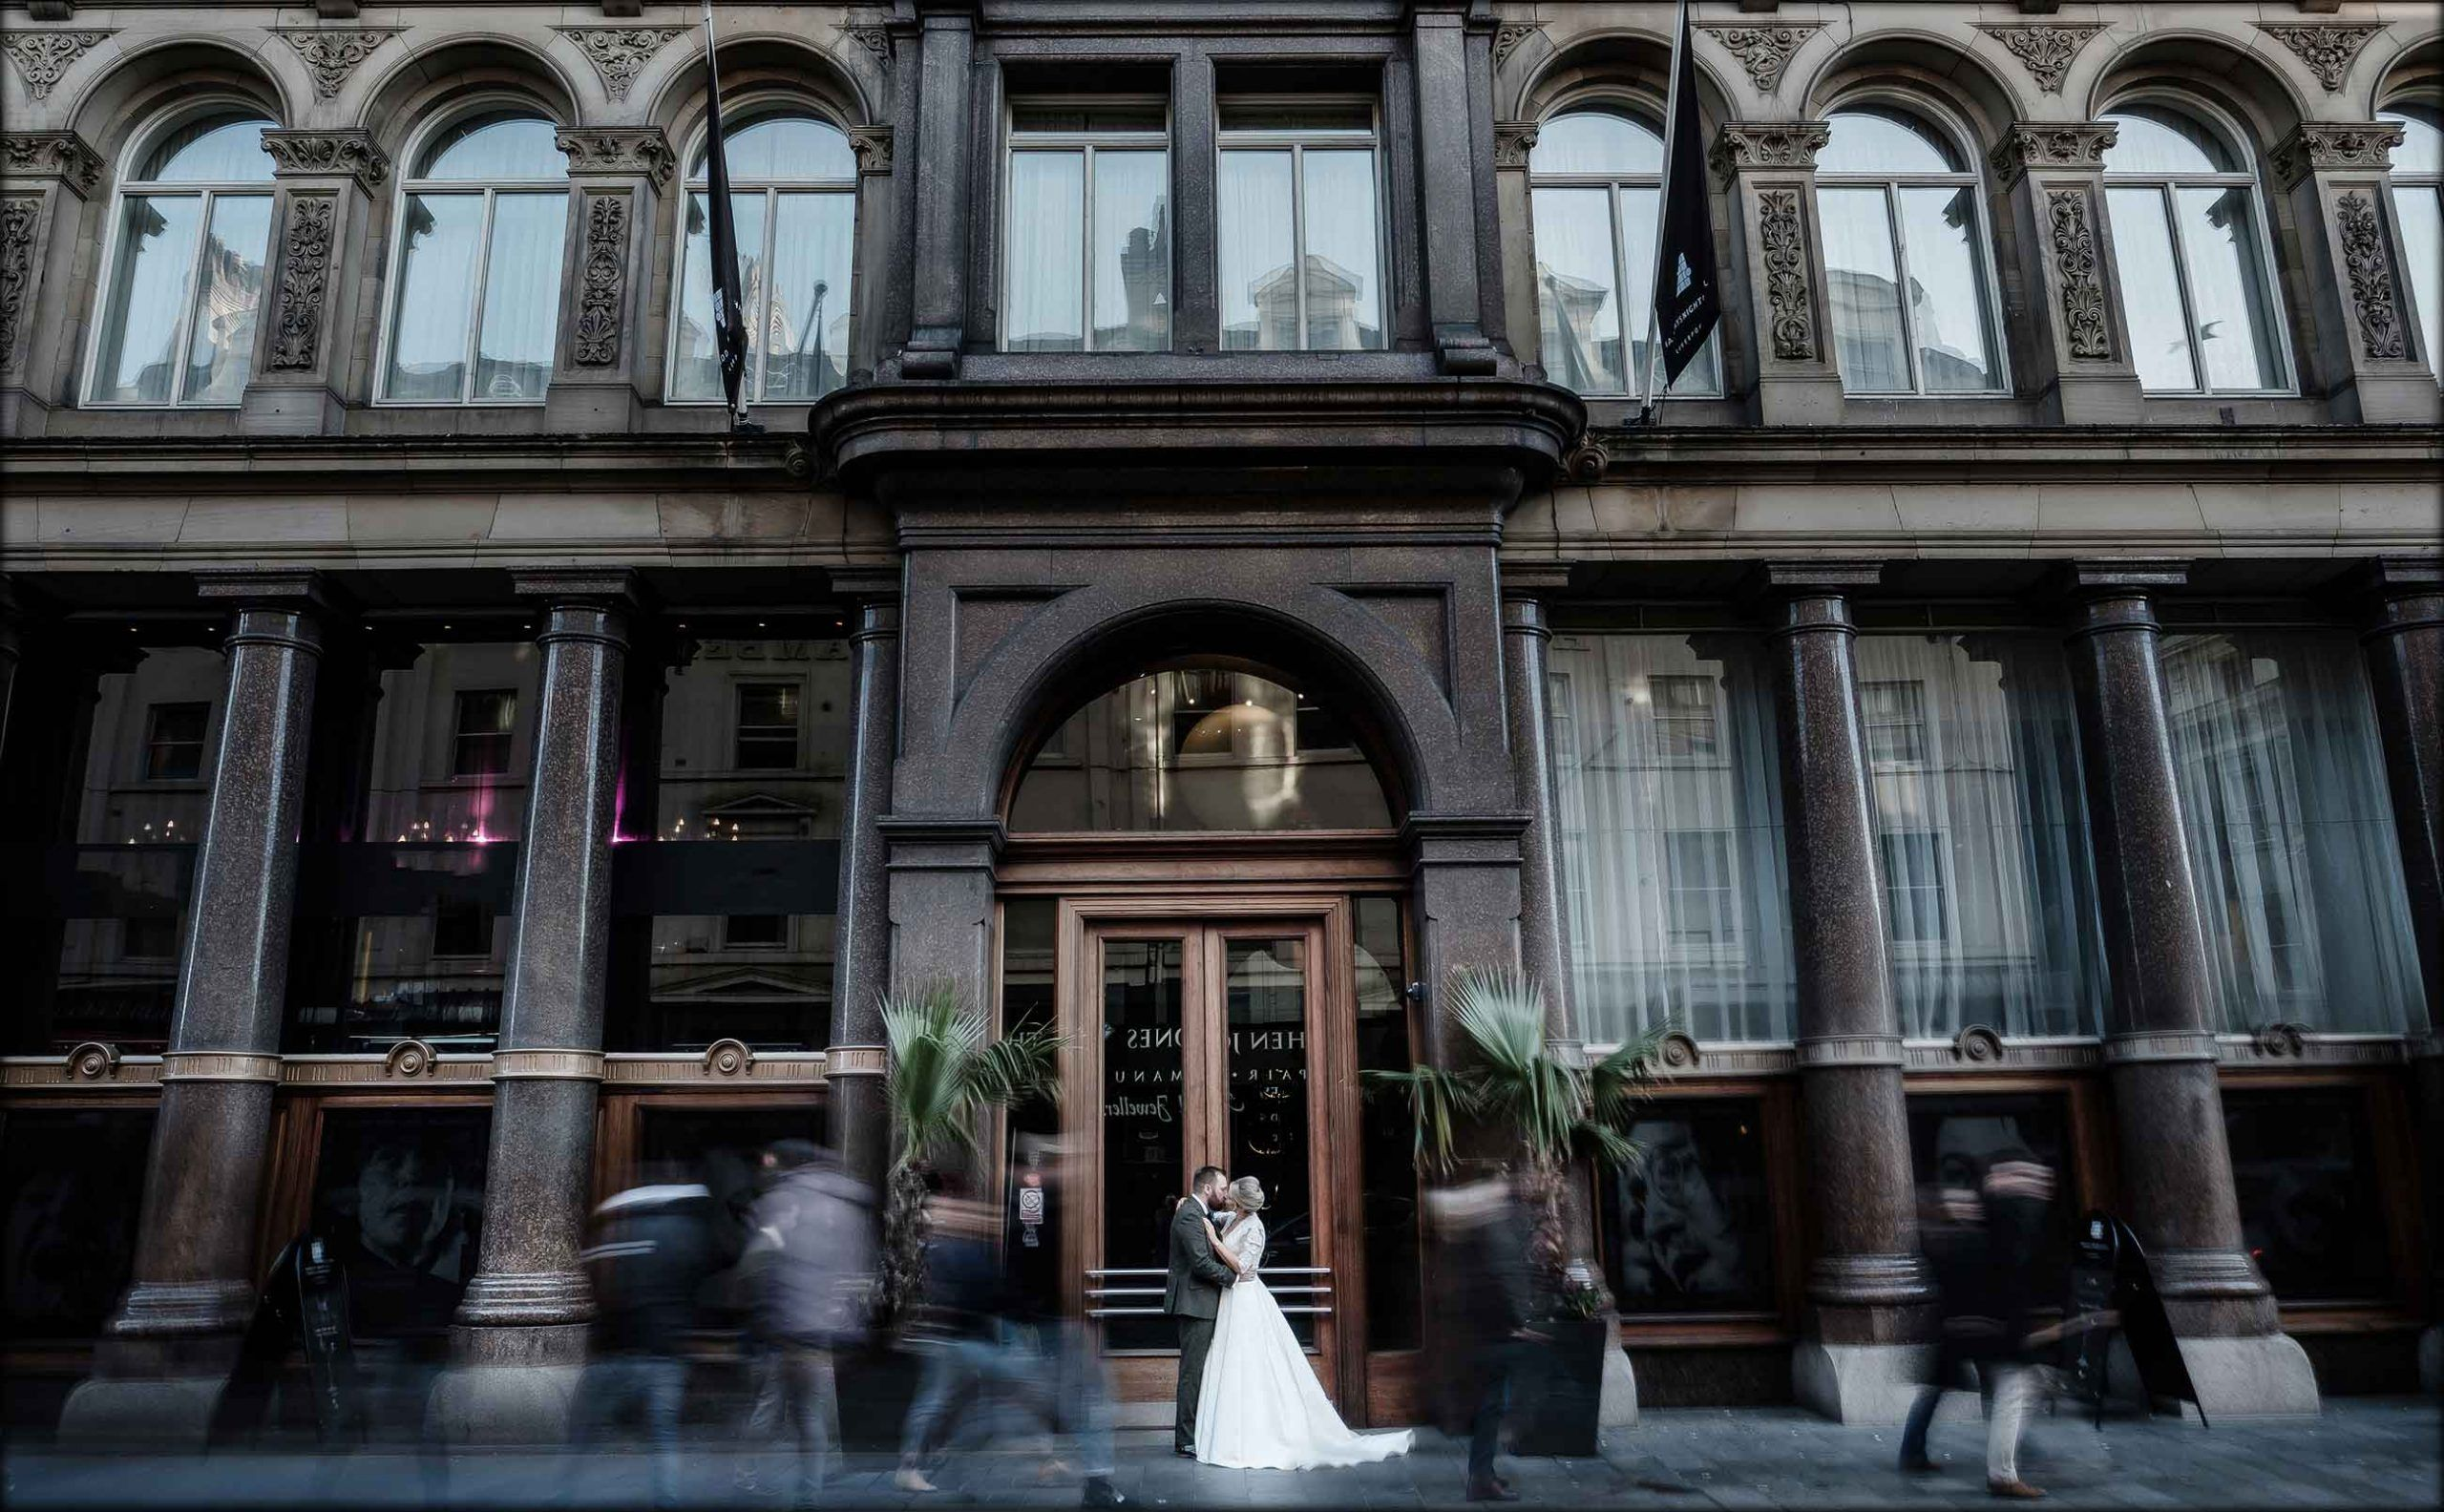 Wedding photography outside Hard Days Night Hotel in Liverpool